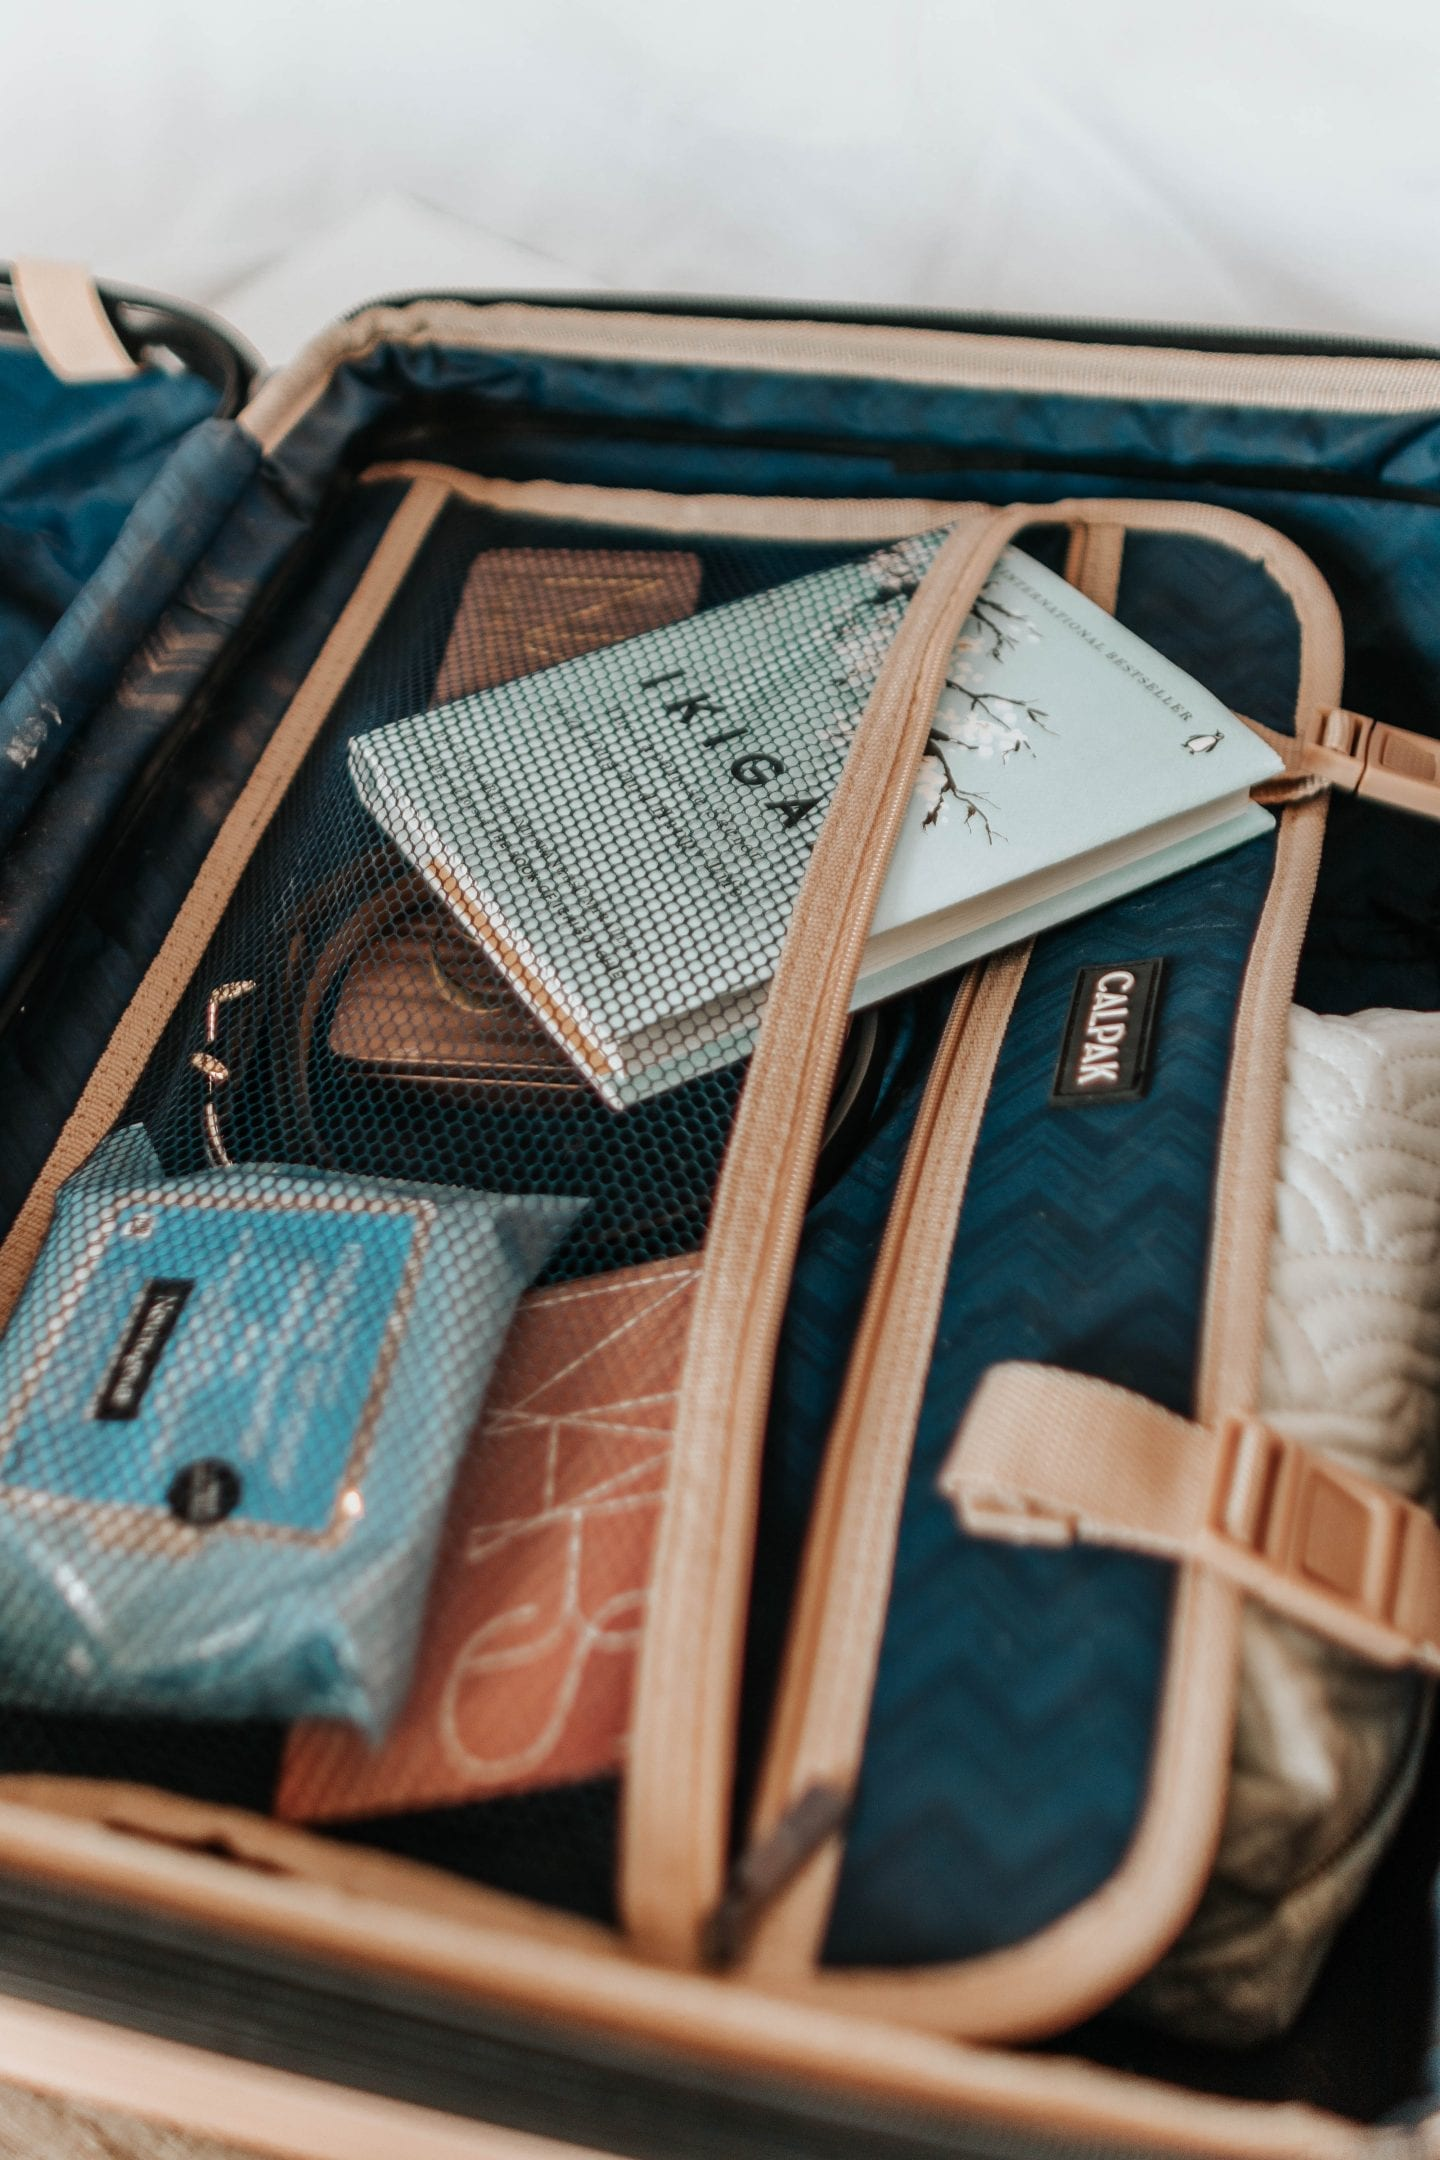 How to Pack a Suitcase to Maximize Space: 11 Organizational Tips So You Can Pack More on Your Next Trip